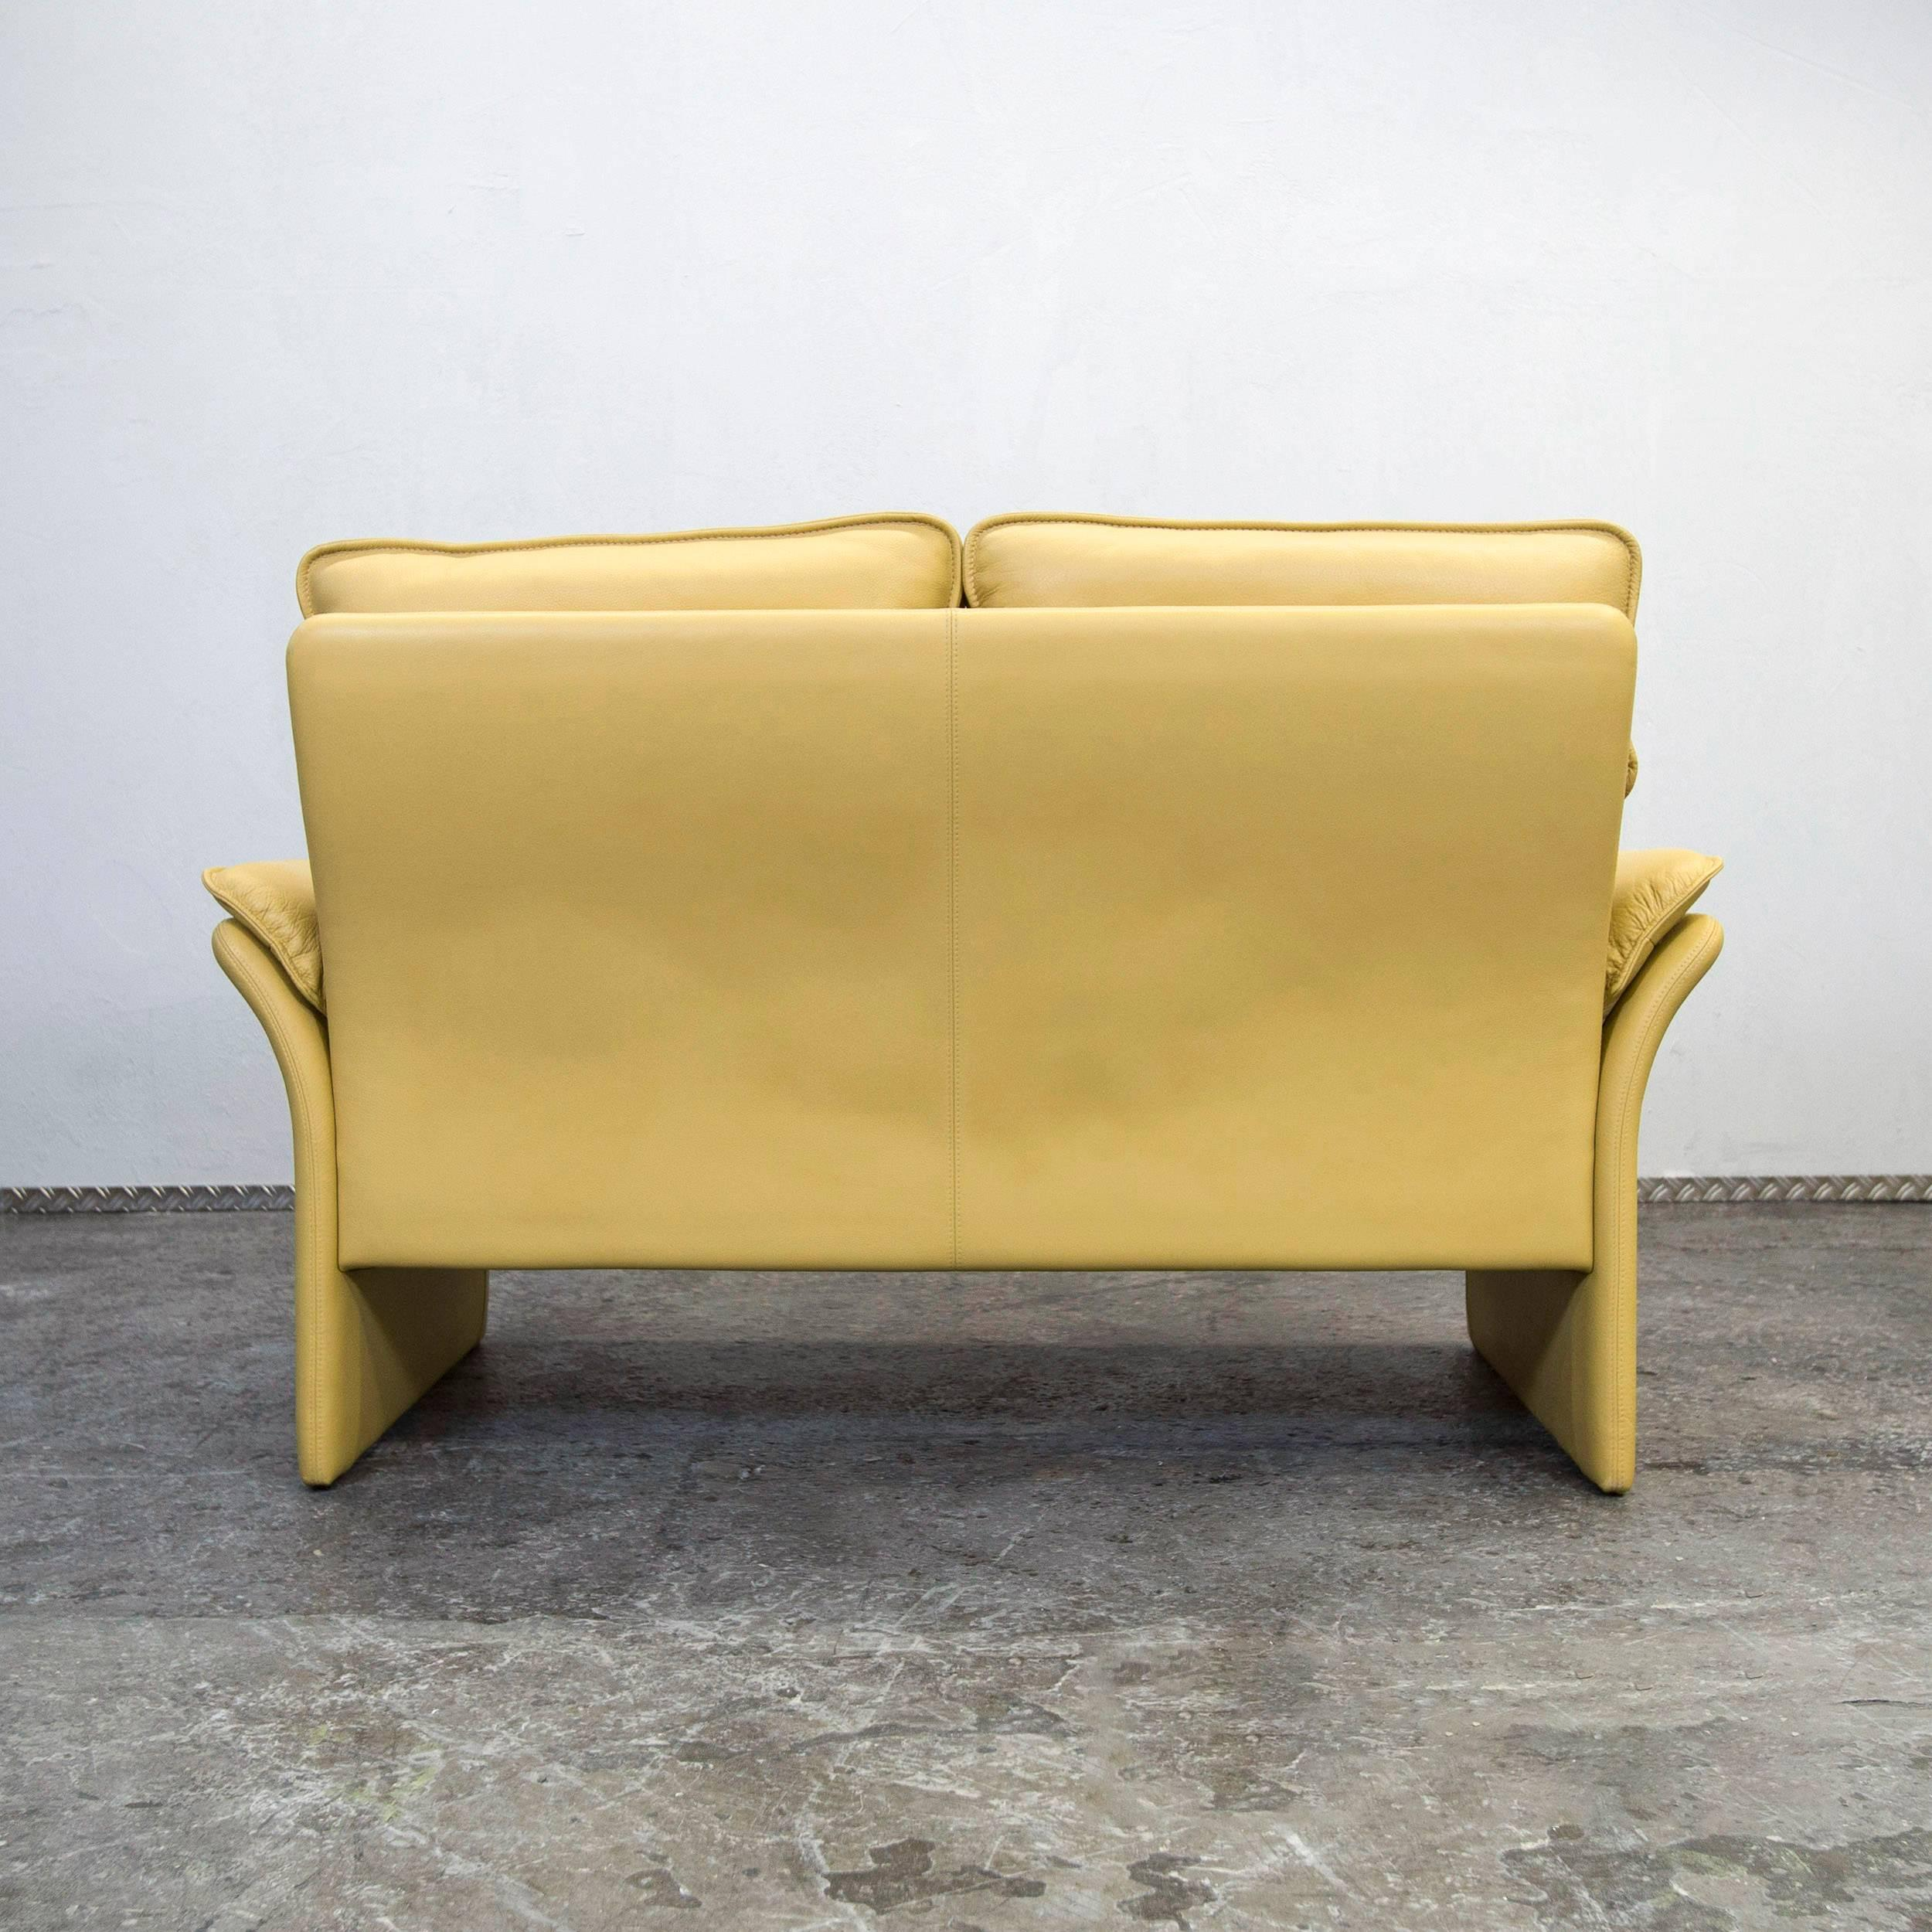 Designer Guild Sessel Dreipunkt Designer Leather Sofa Mustard Yellow Two-seat